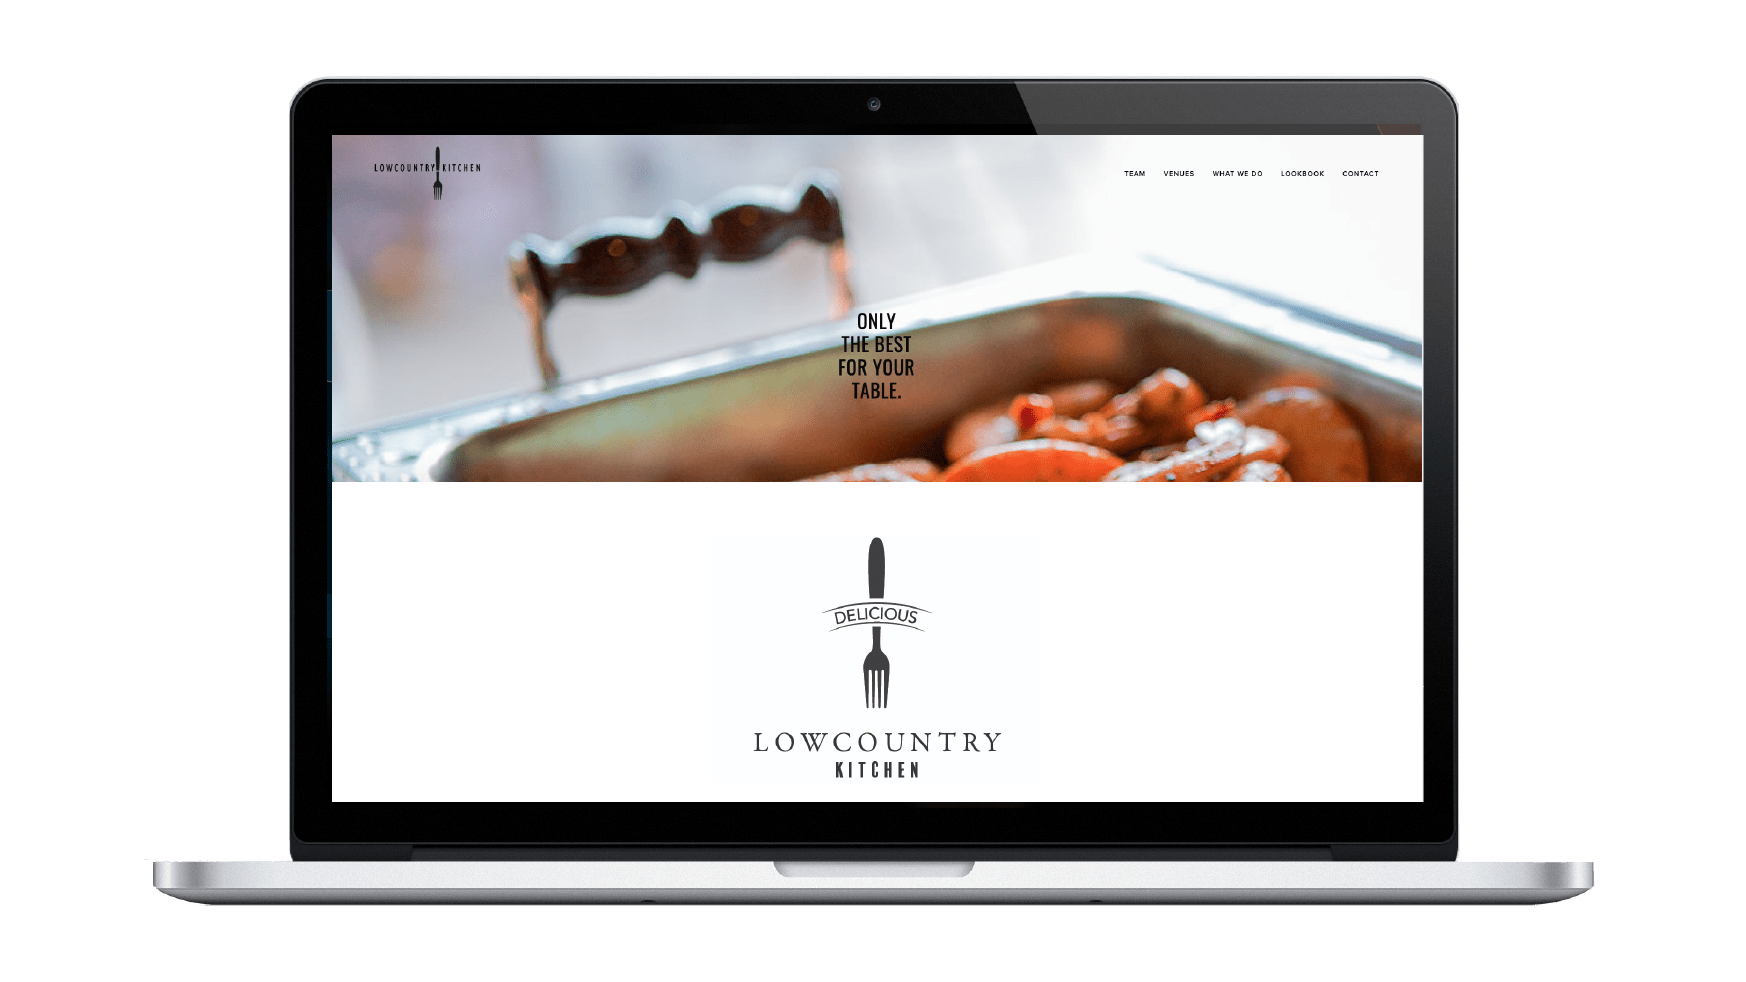 Lowcountry Kitchen Catering and Restaurant Squarespace website by Caitilin McPhillips.